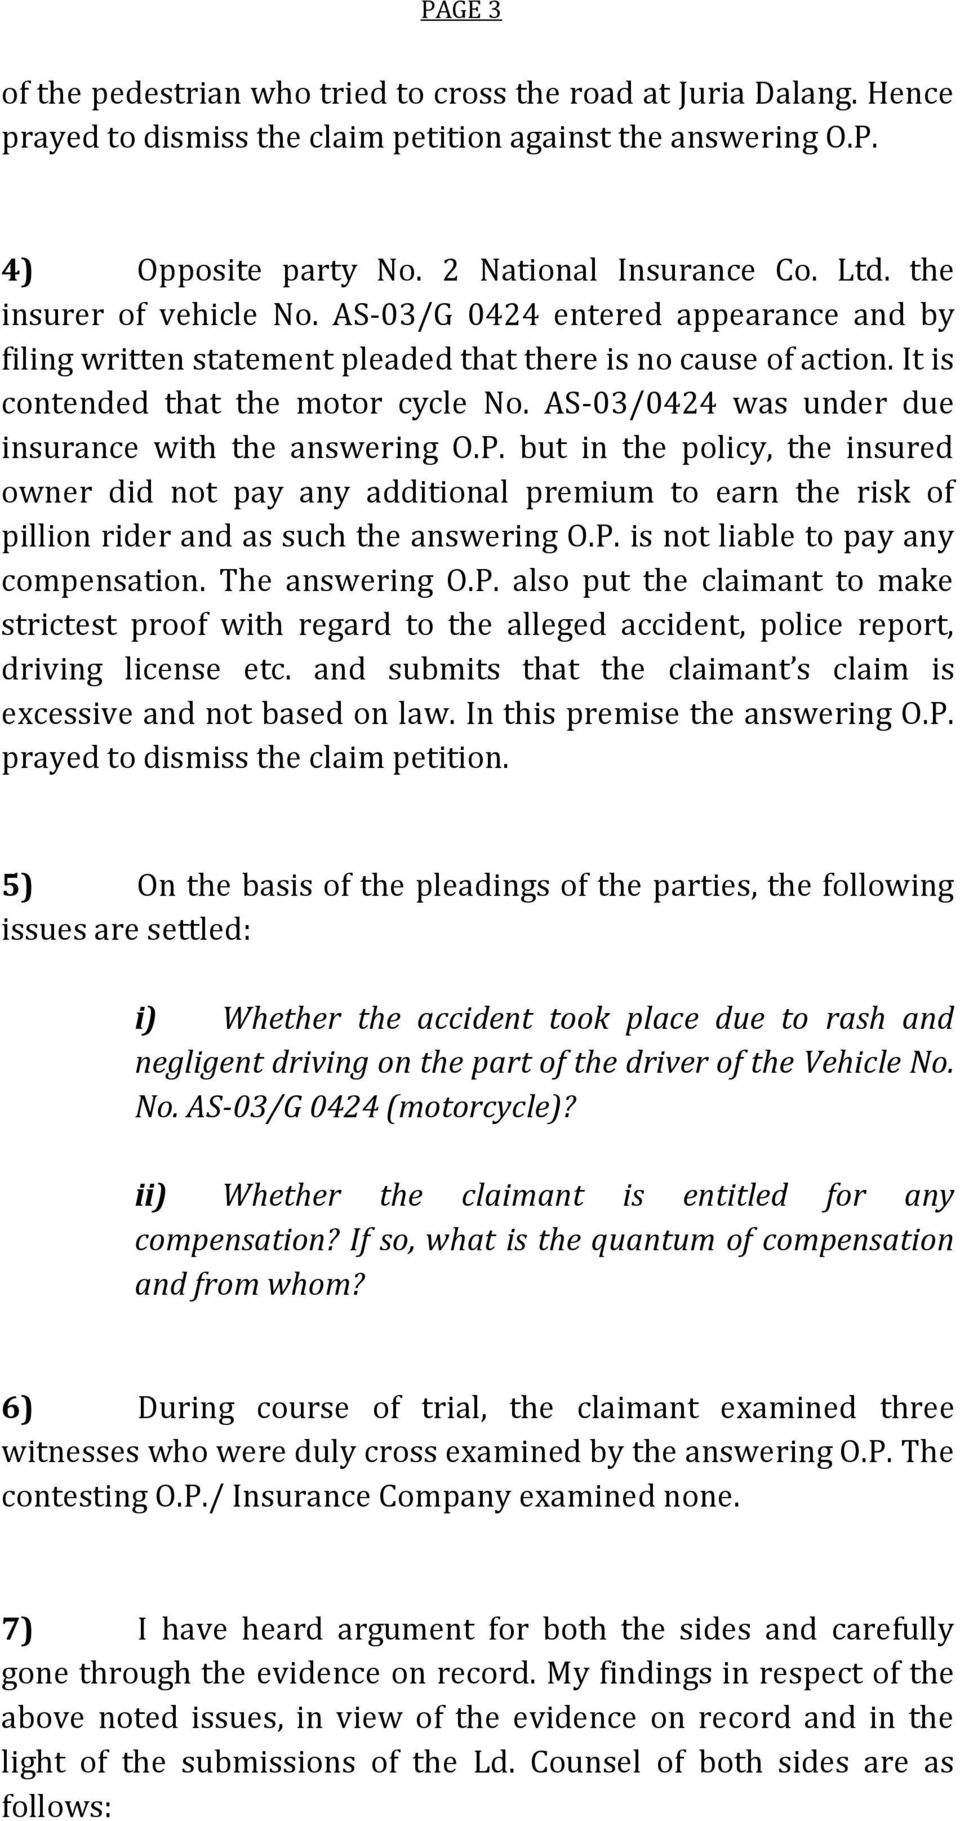 AS-03/0424 was under due insurance with the answering O.P. but in the policy, the insured owner did not pay any additional premium to earn the risk of pillion rider and as such the answering O.P. is not liable to pay any compensation.